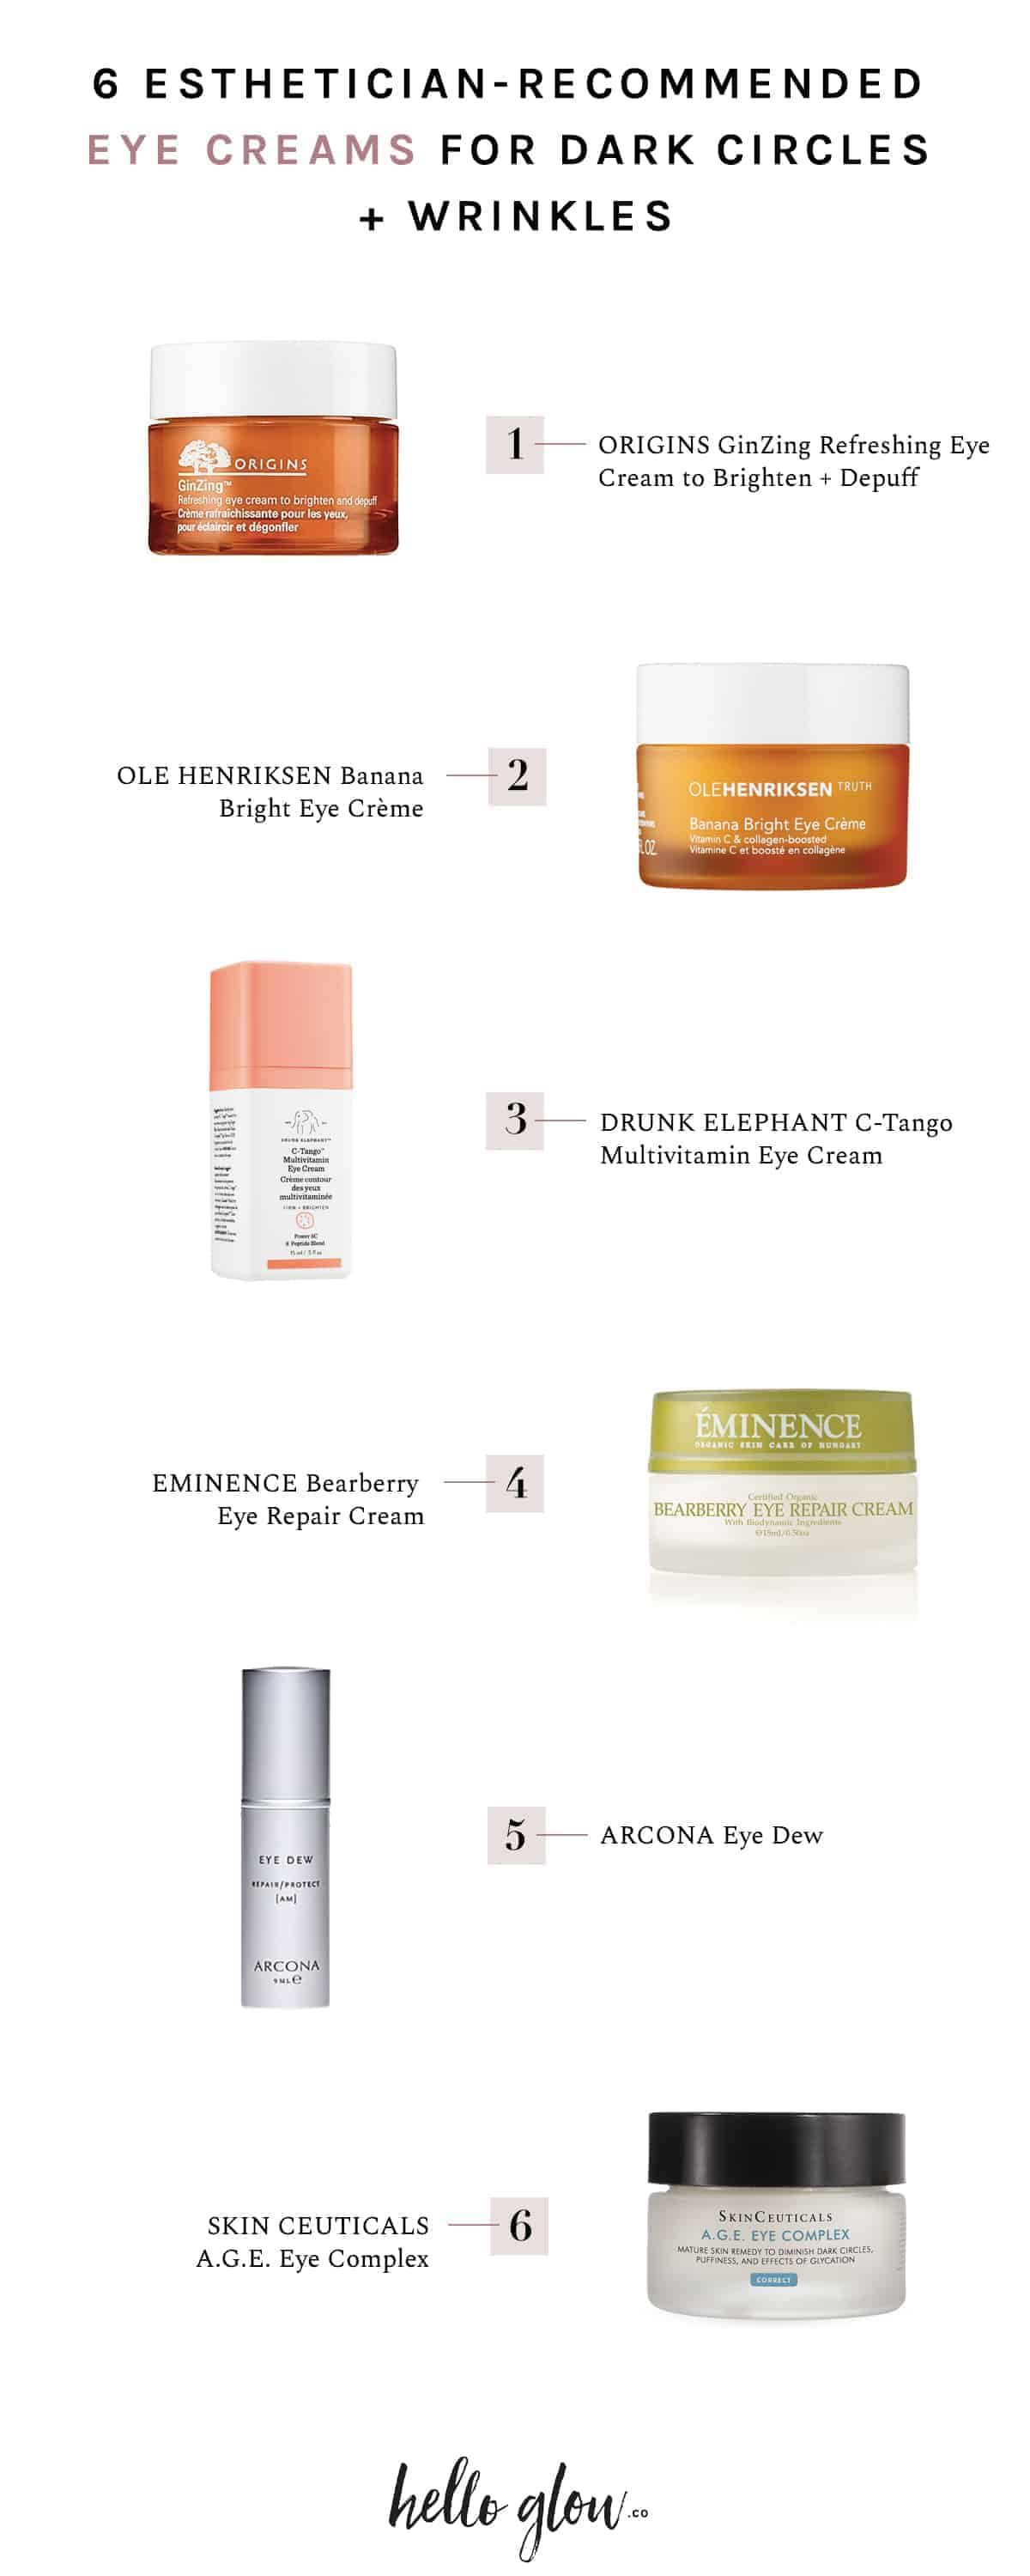 6 Esthetician-Recommended Eye Creams for Dark Circles + Wrinkles #darkcircle